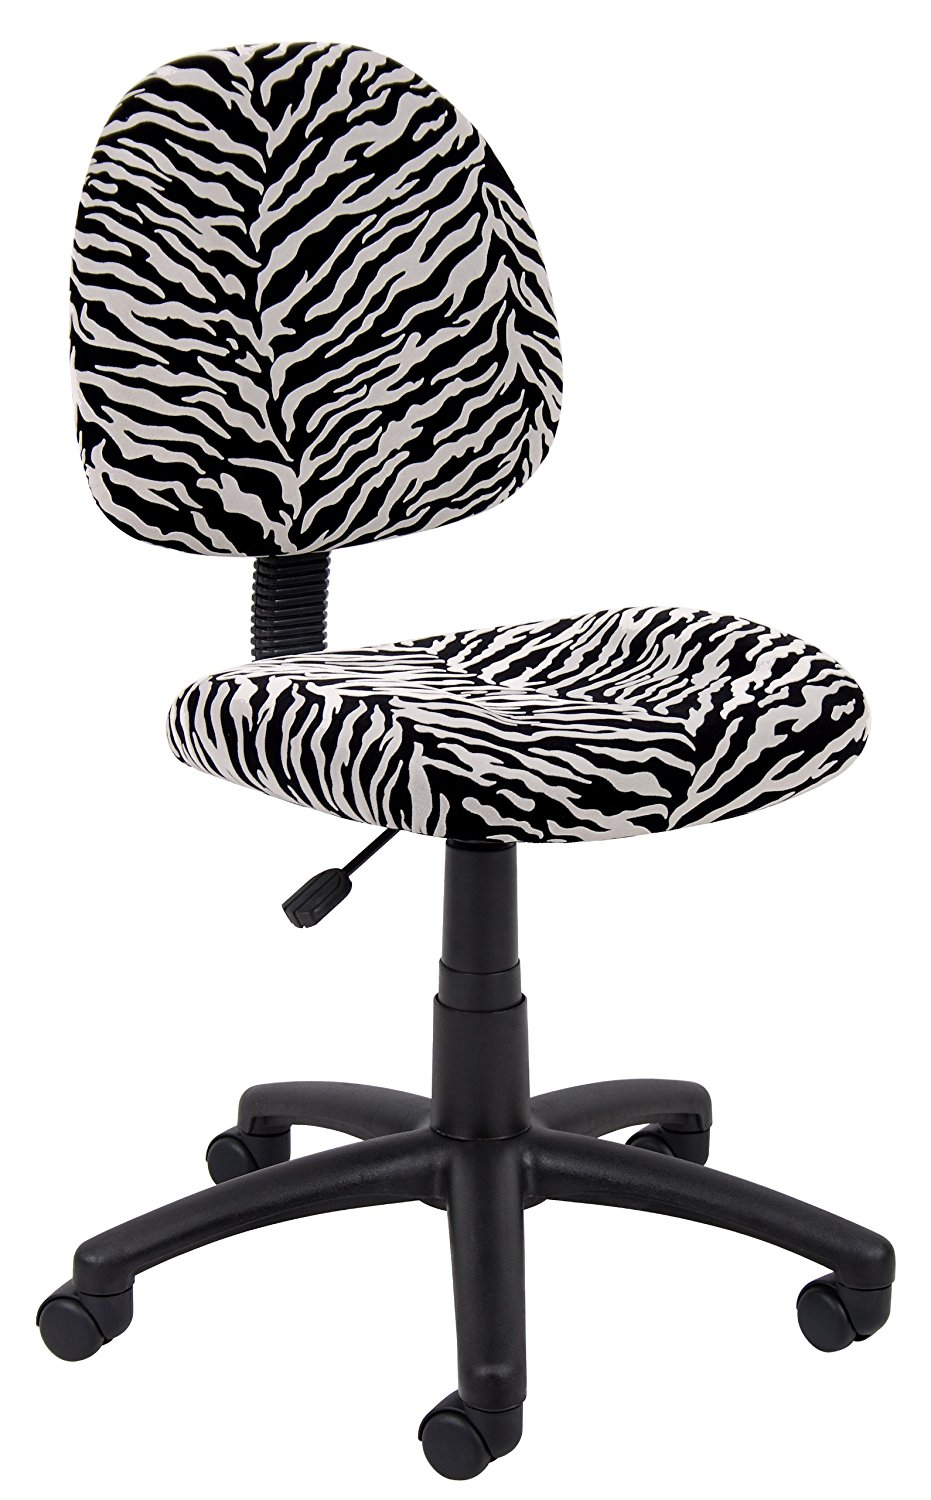 posture deluxe chair barber o que significa cheap office find deals on line get quotations boss zebra print microfiber by products